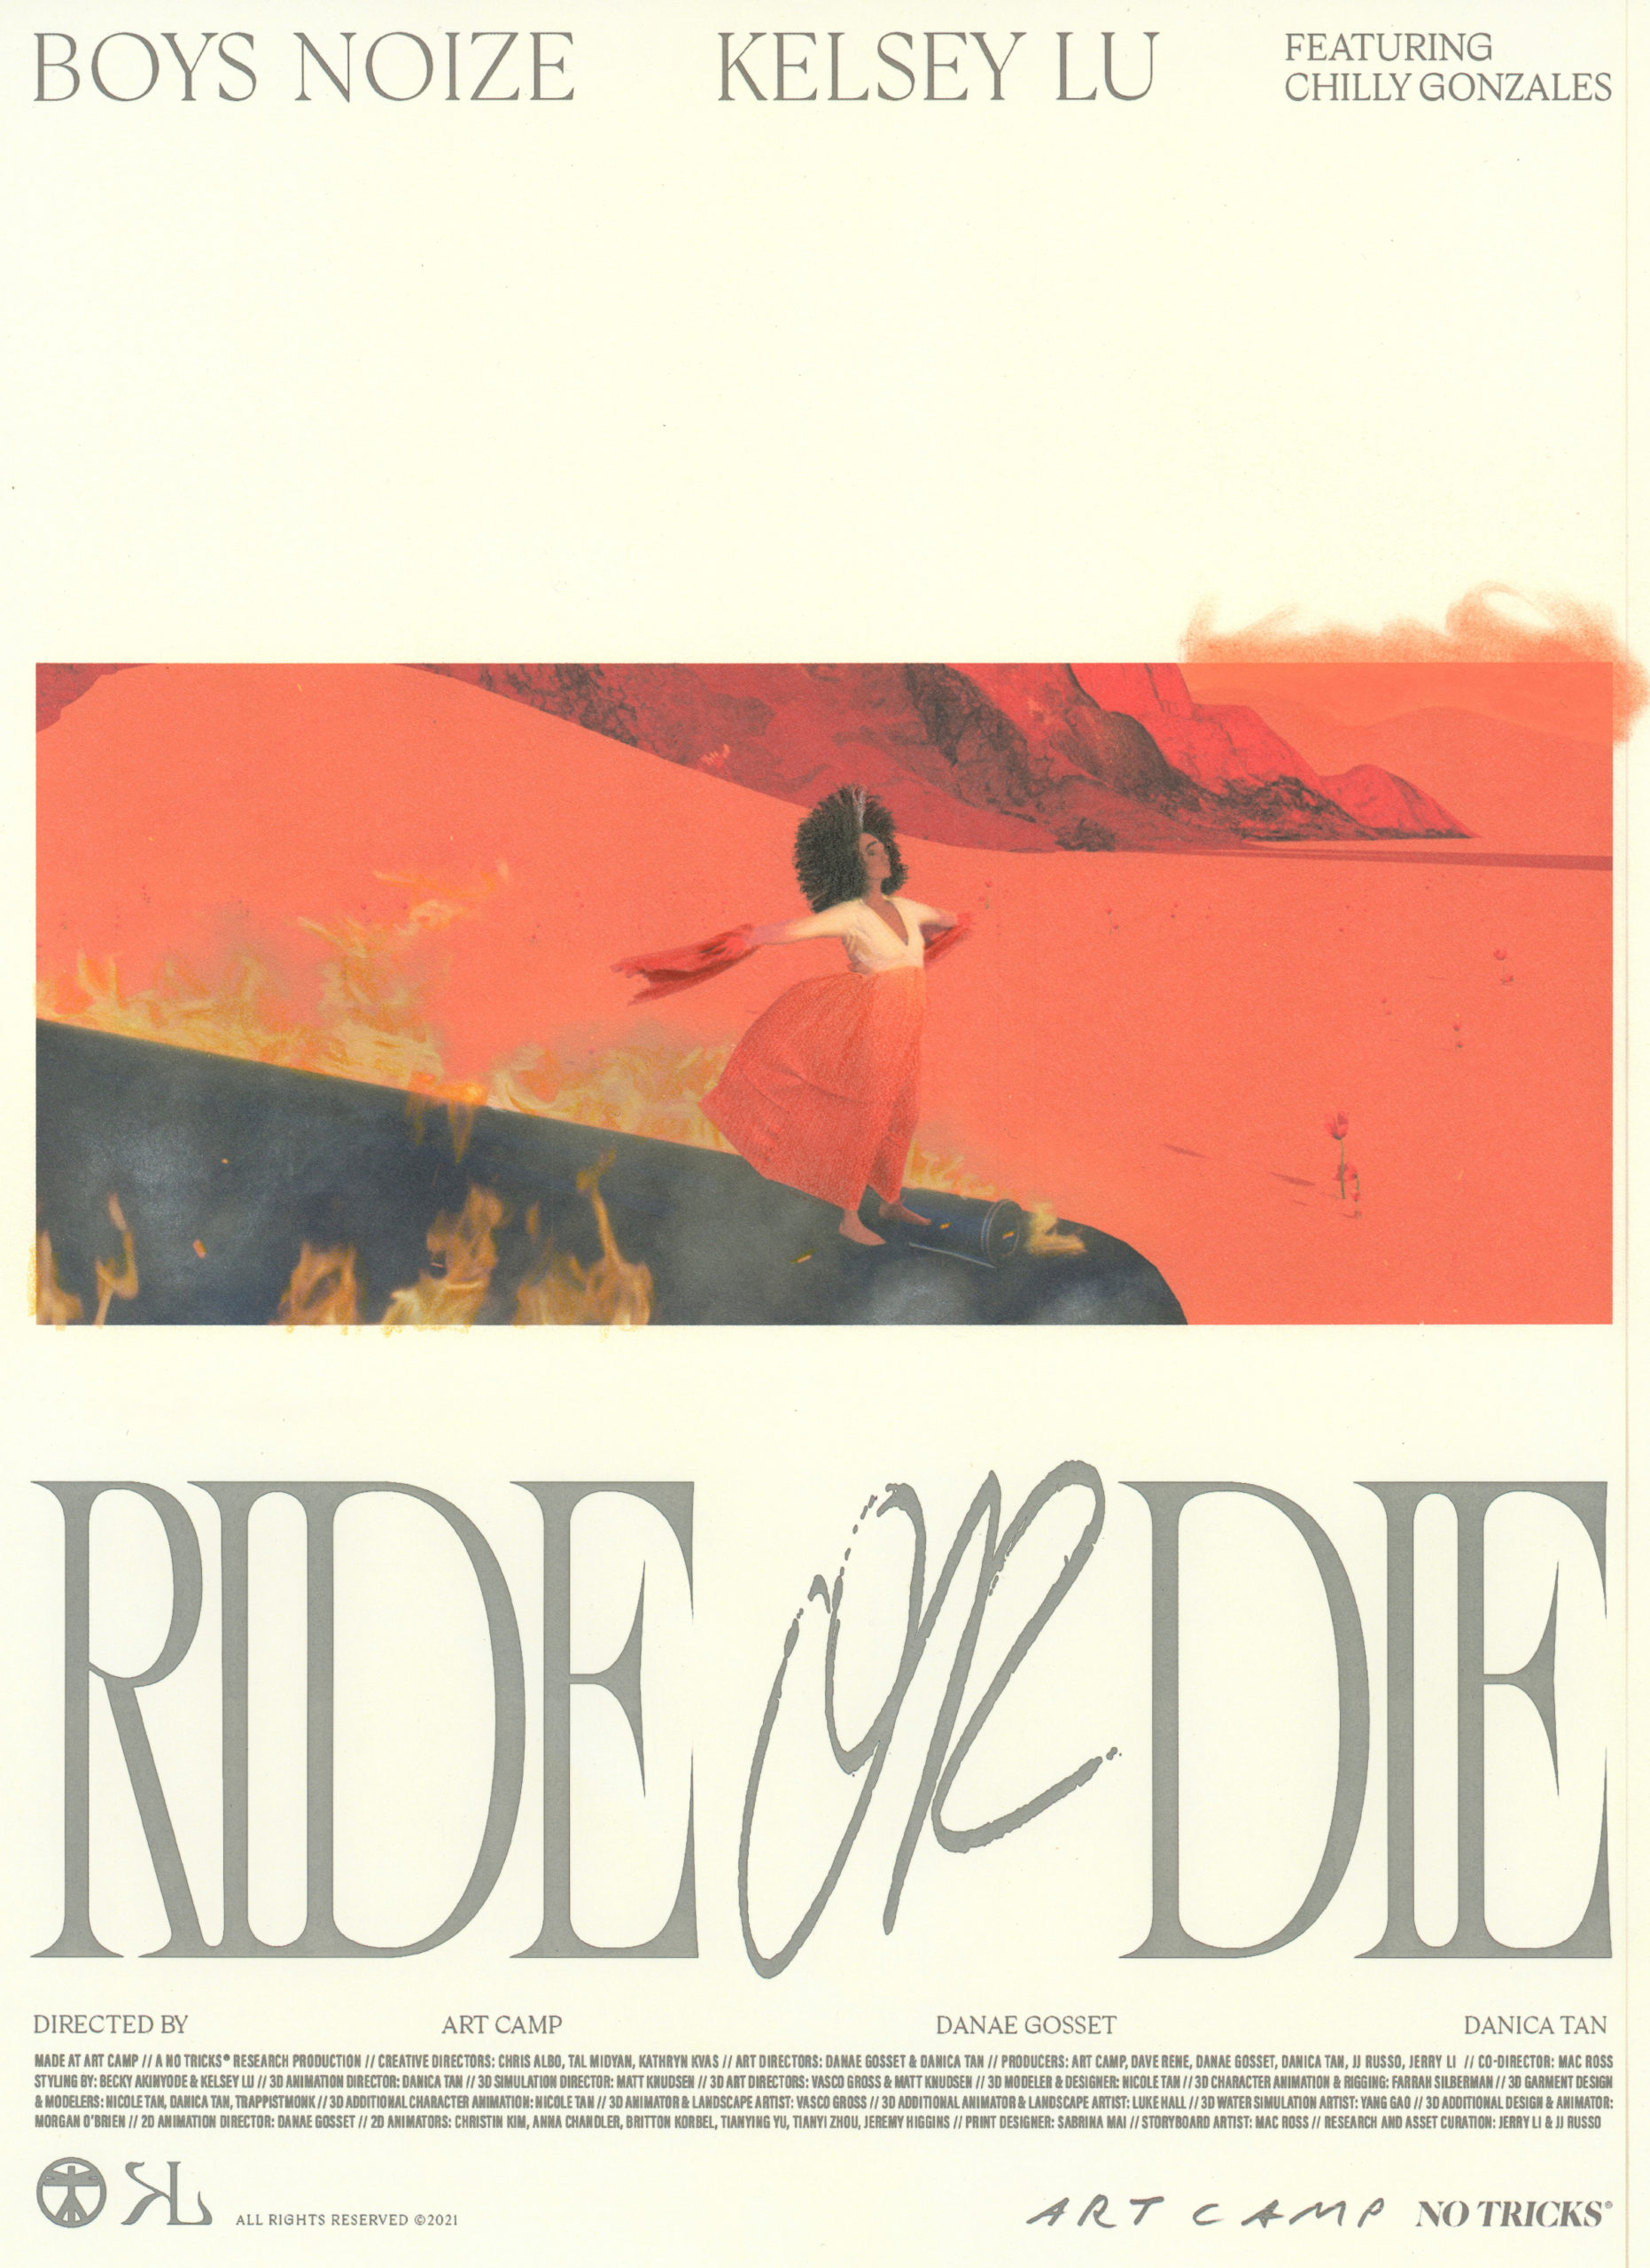 """Boys Noize & Kelsey Lu - """"Ride Or Die"""" feat. Chilly Gonzales"""